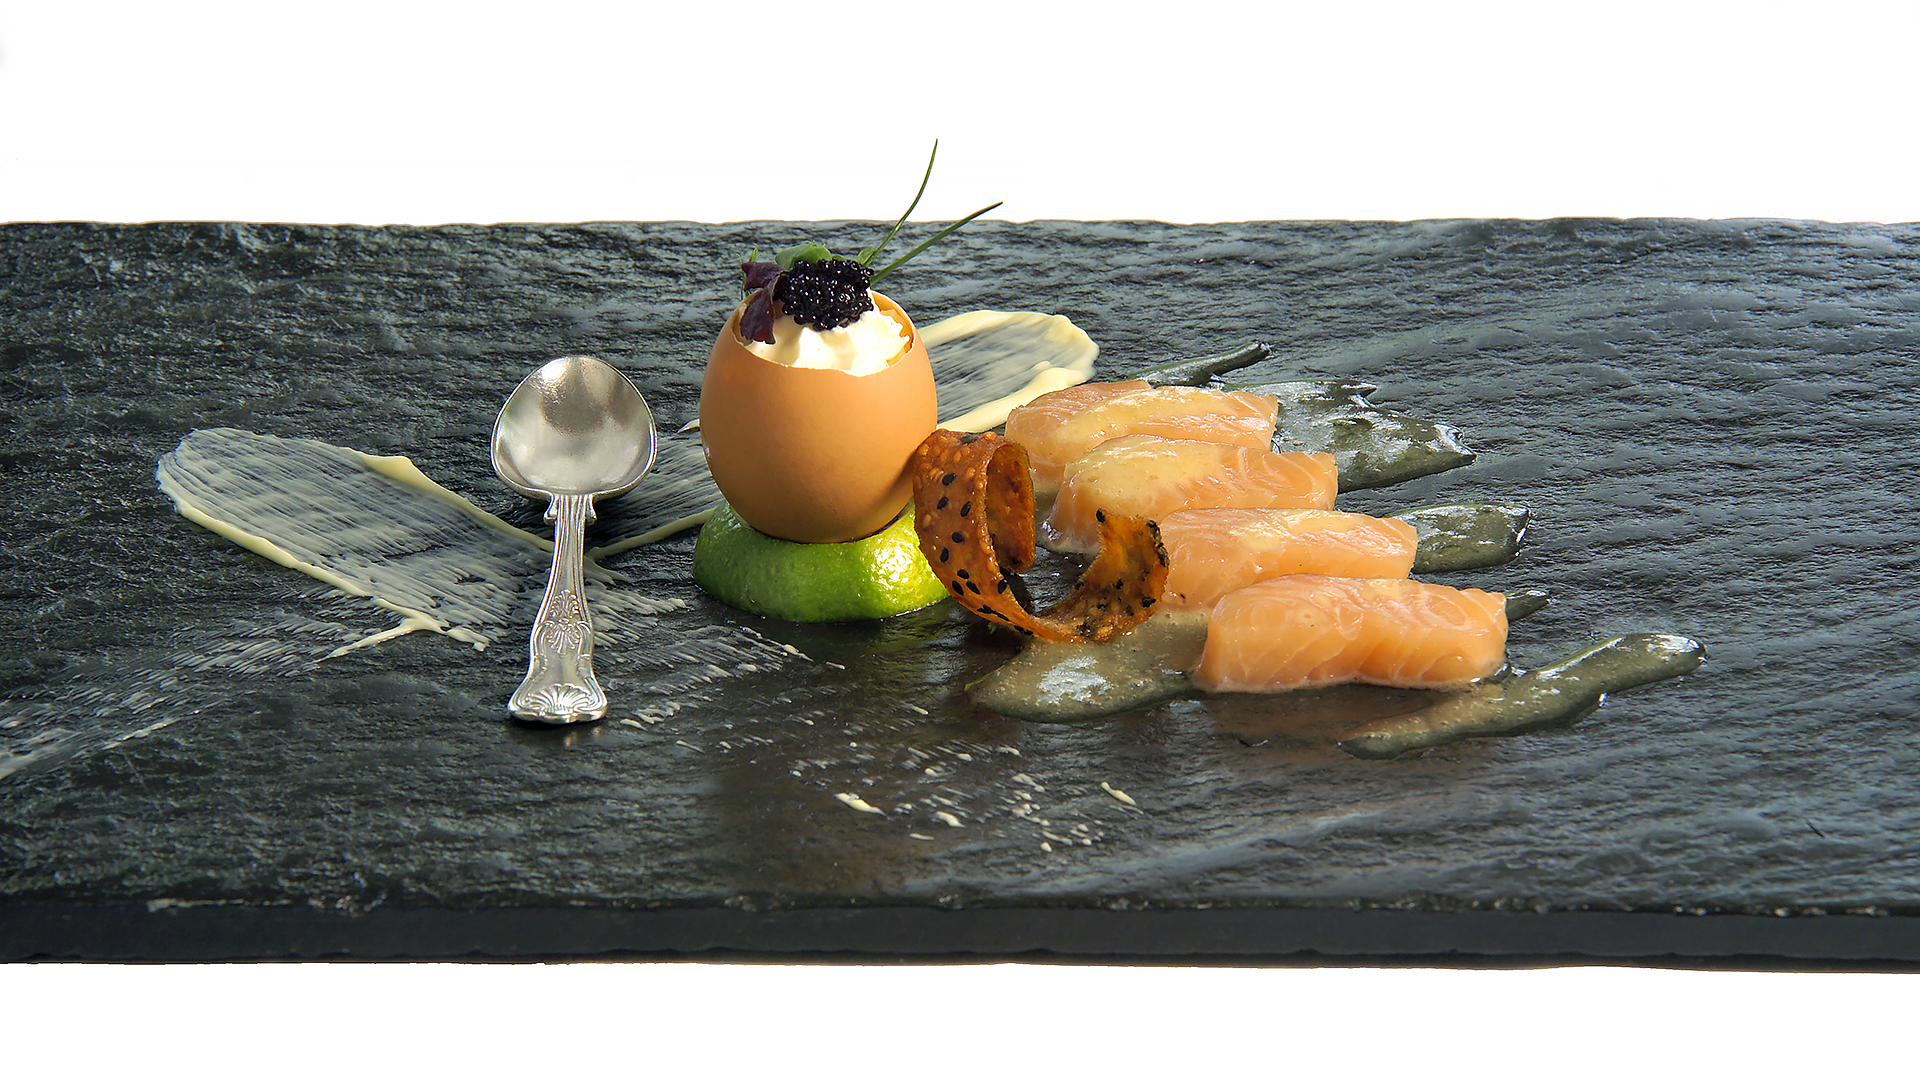 Wordsworth Restaurant Menu Image: Starter presented on Lake District slate platter